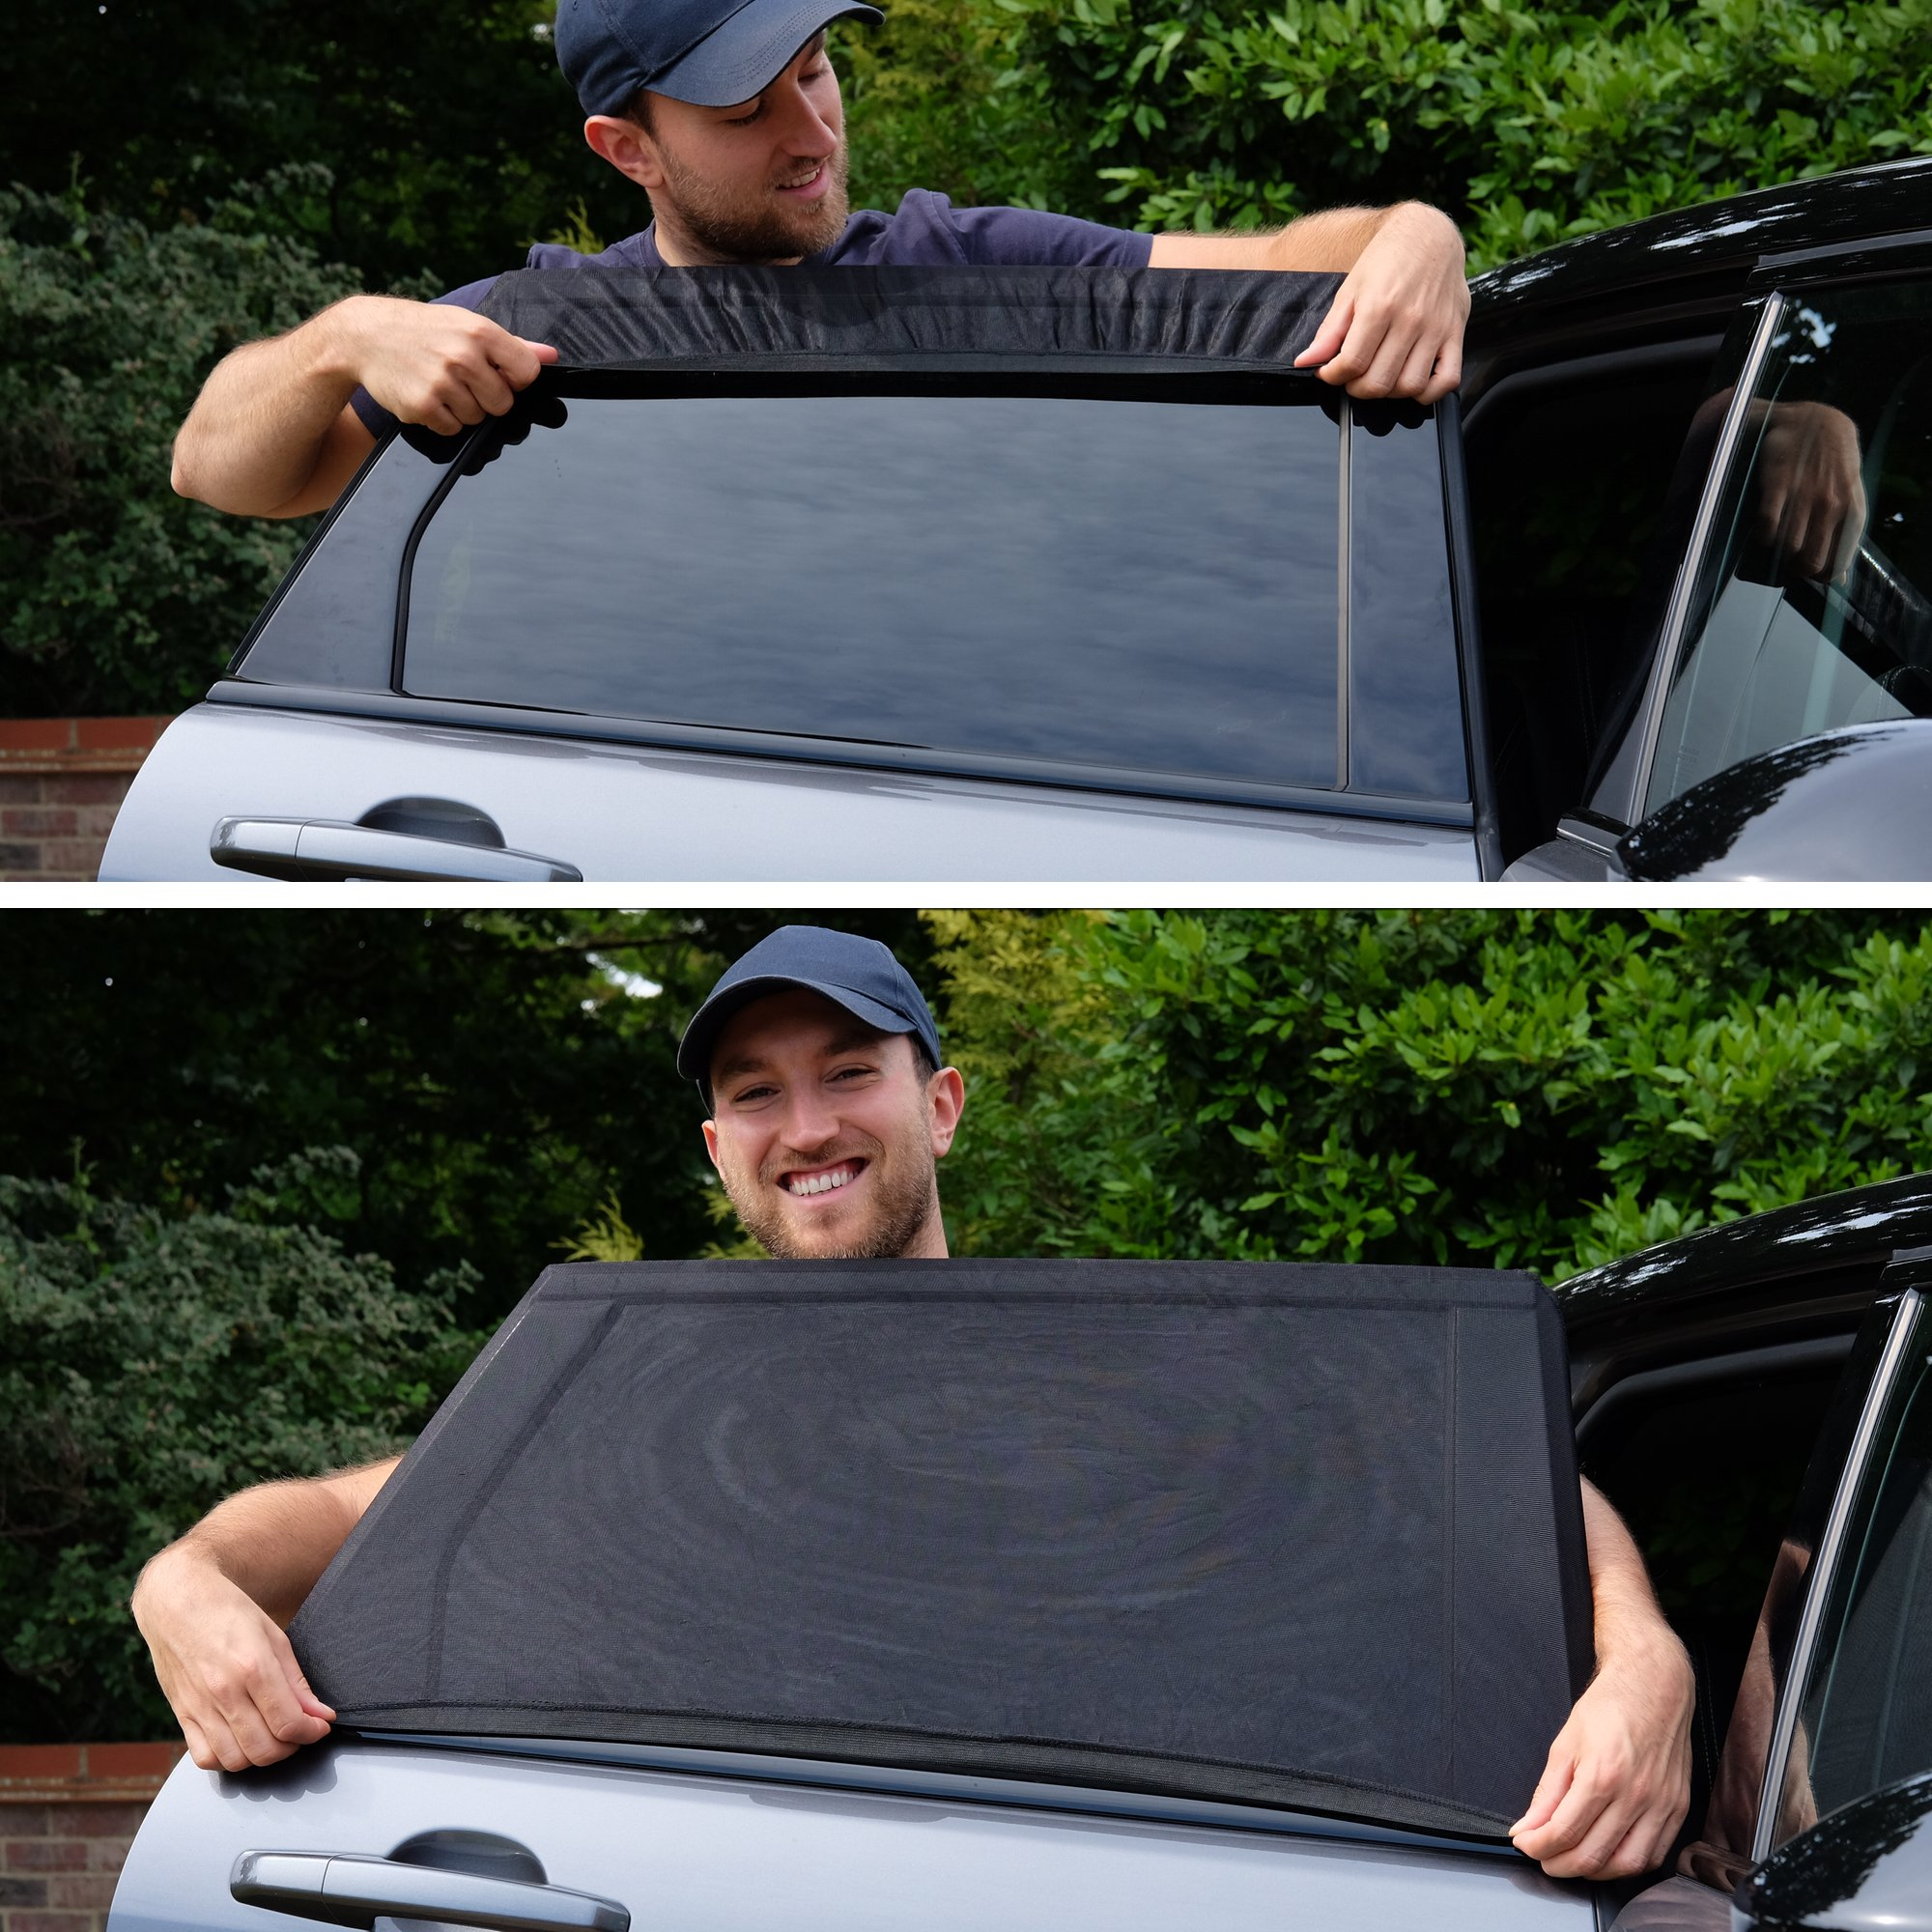 Buy Car Window Sun Shade Now!